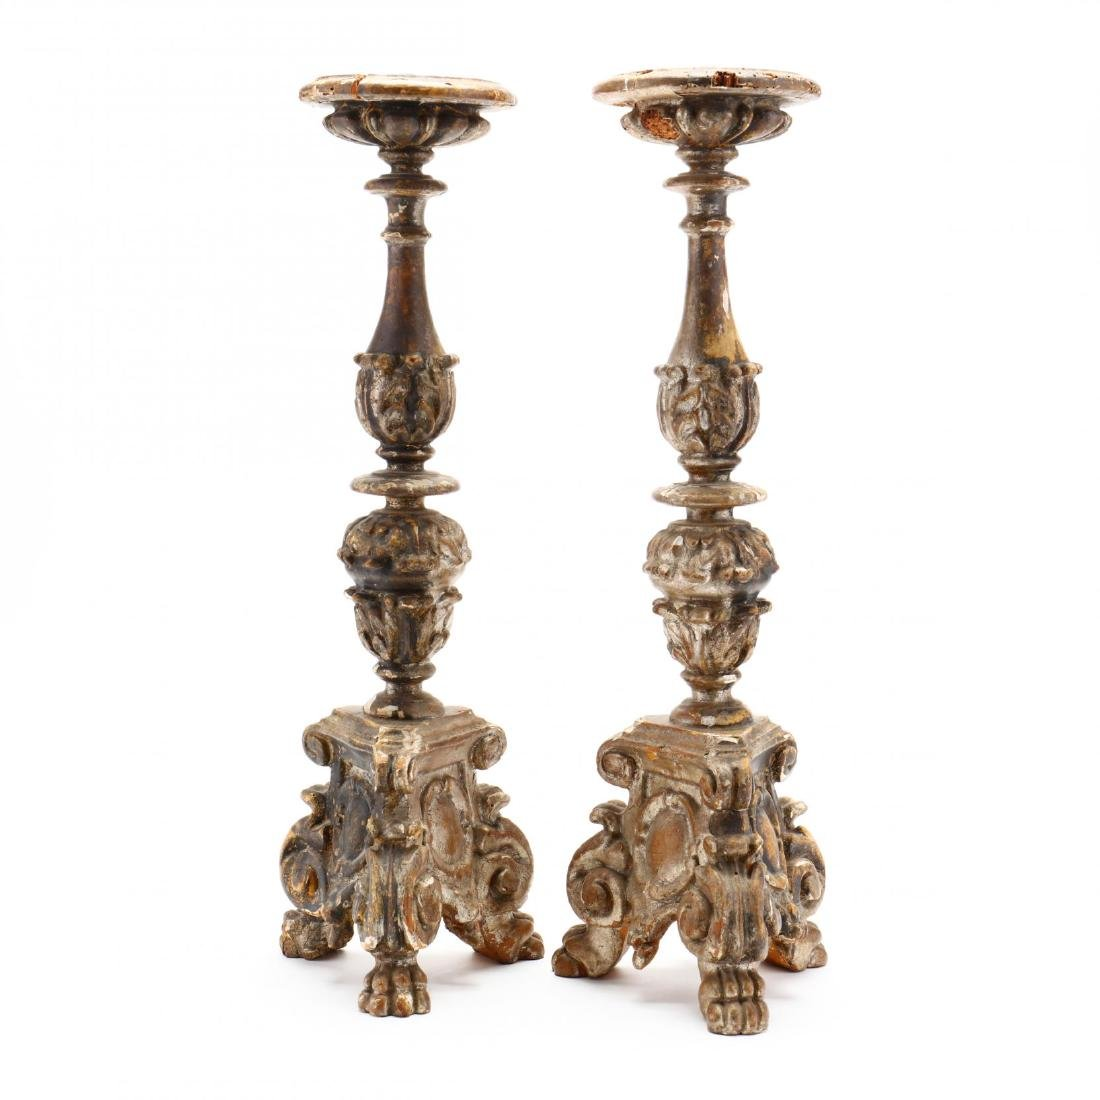 Pair of Antique Carved and Gilt Pricket Sticks - 3